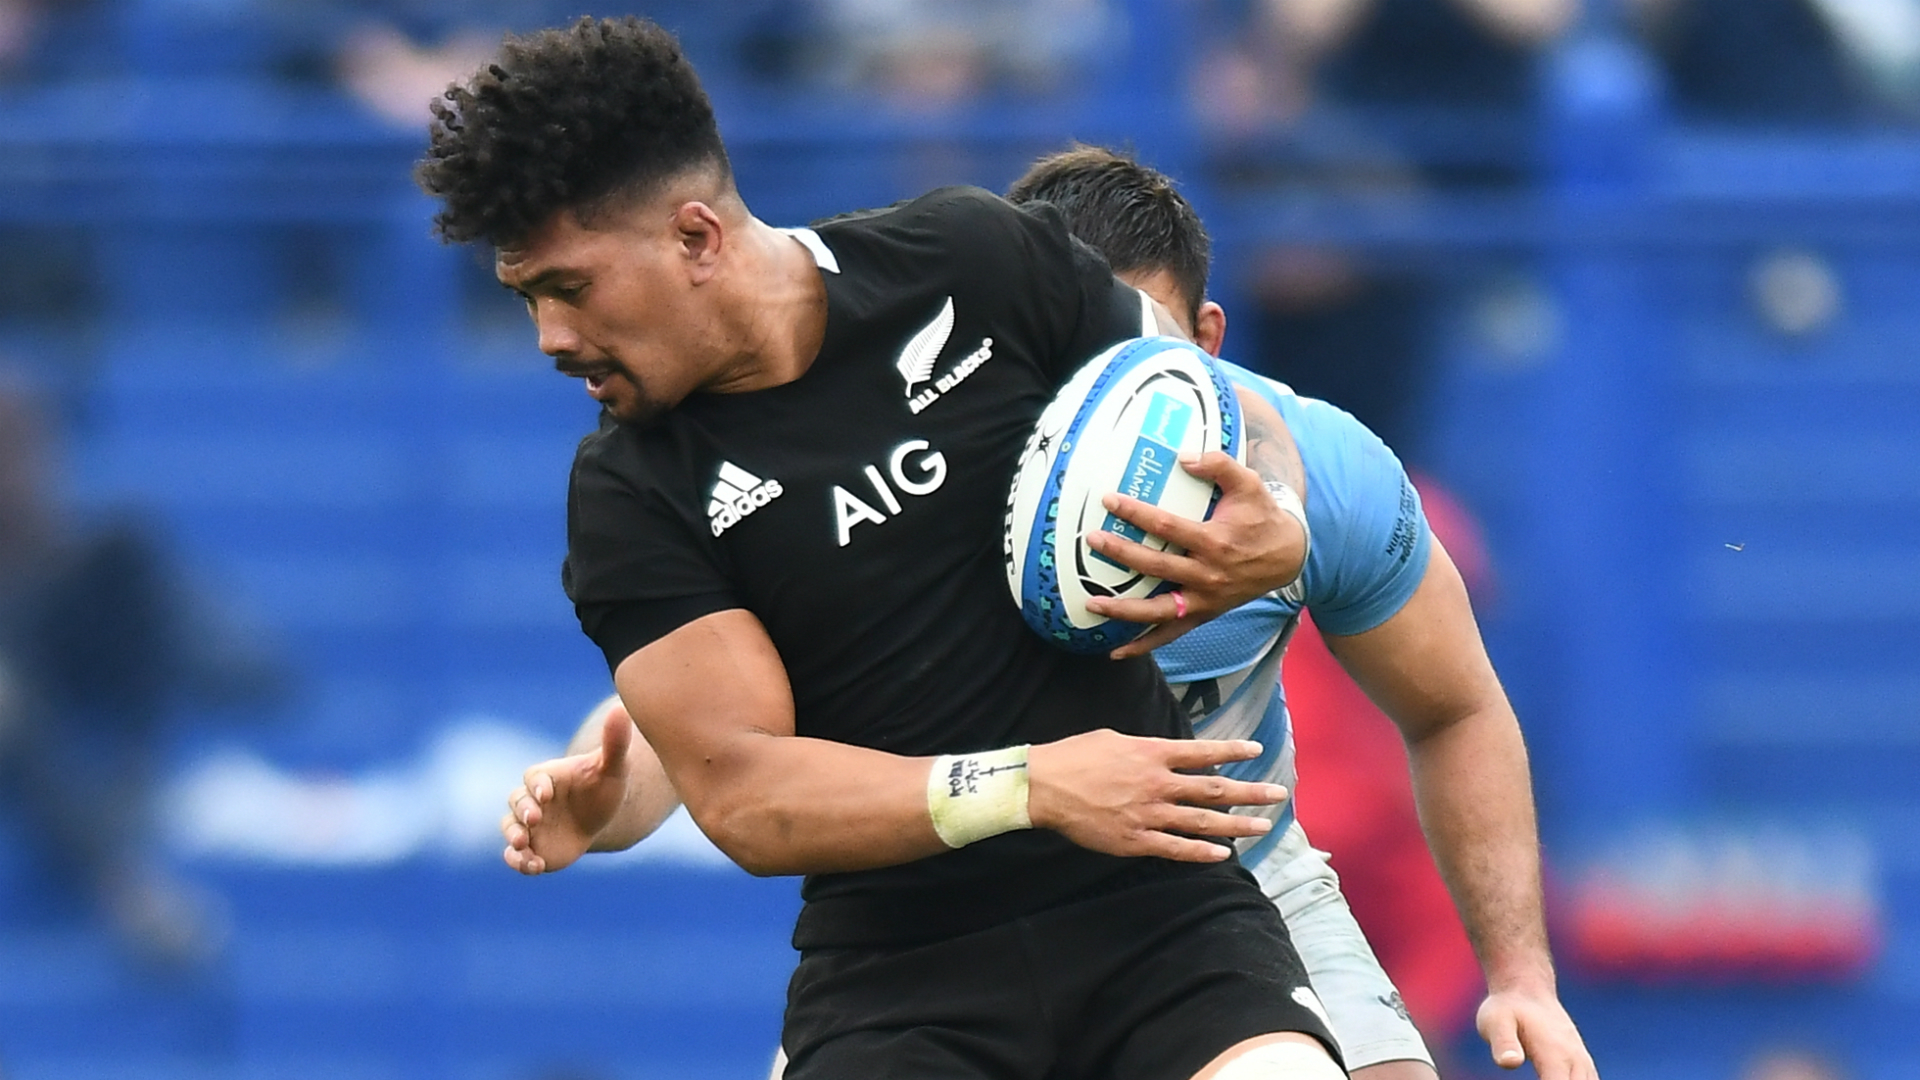 All Blacks relieved after beating Argentina in Rugby Championship opener